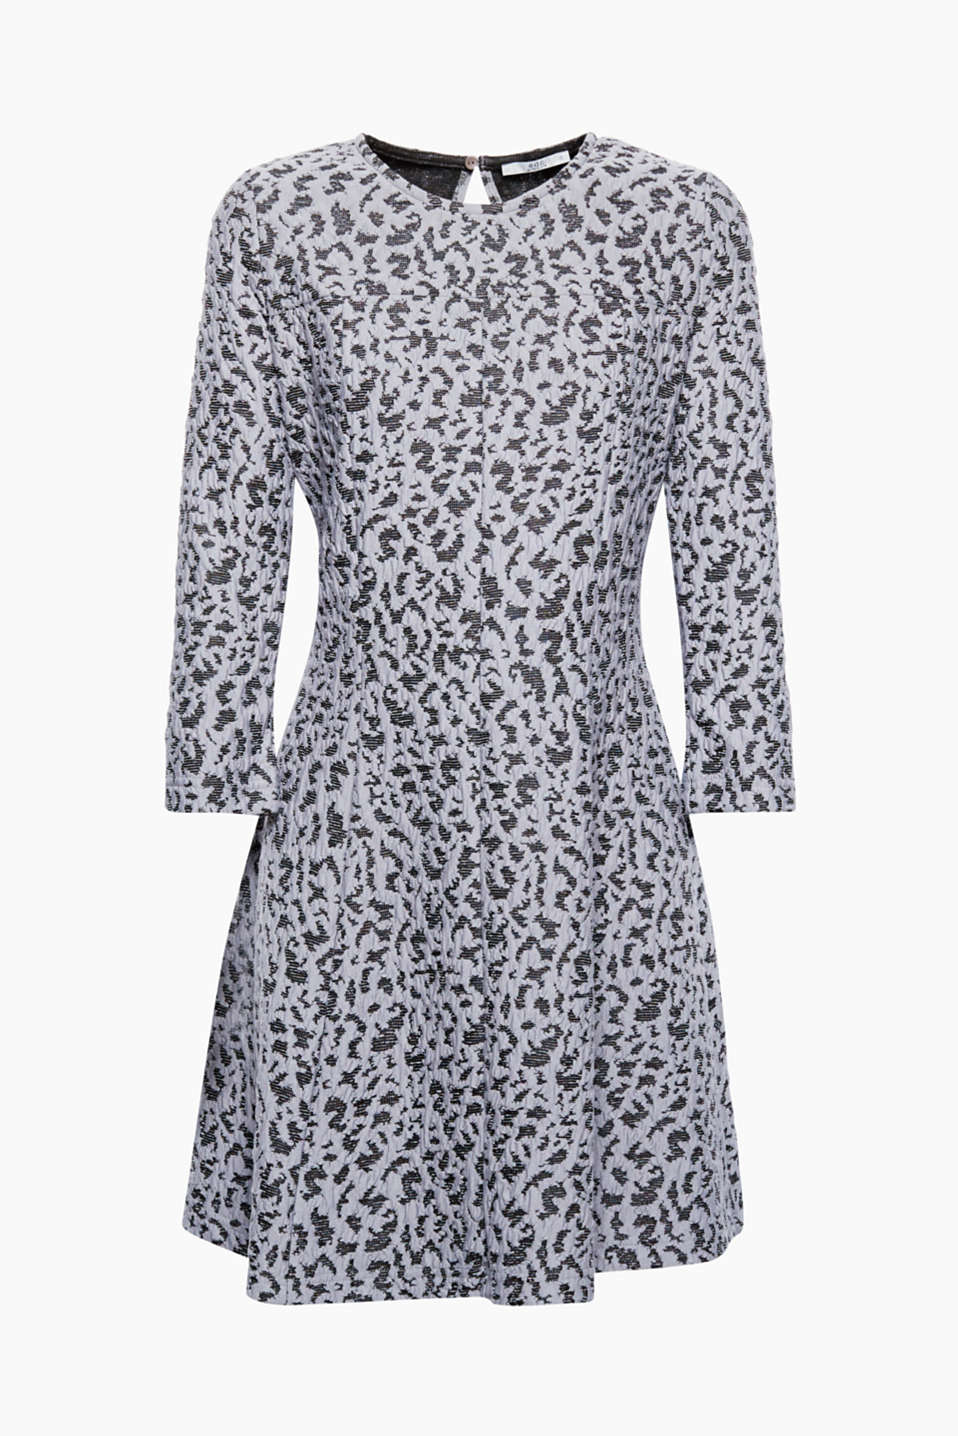 Combines winter comfort with feminine style: Dress made from dense jersey with a jacquard pattern!